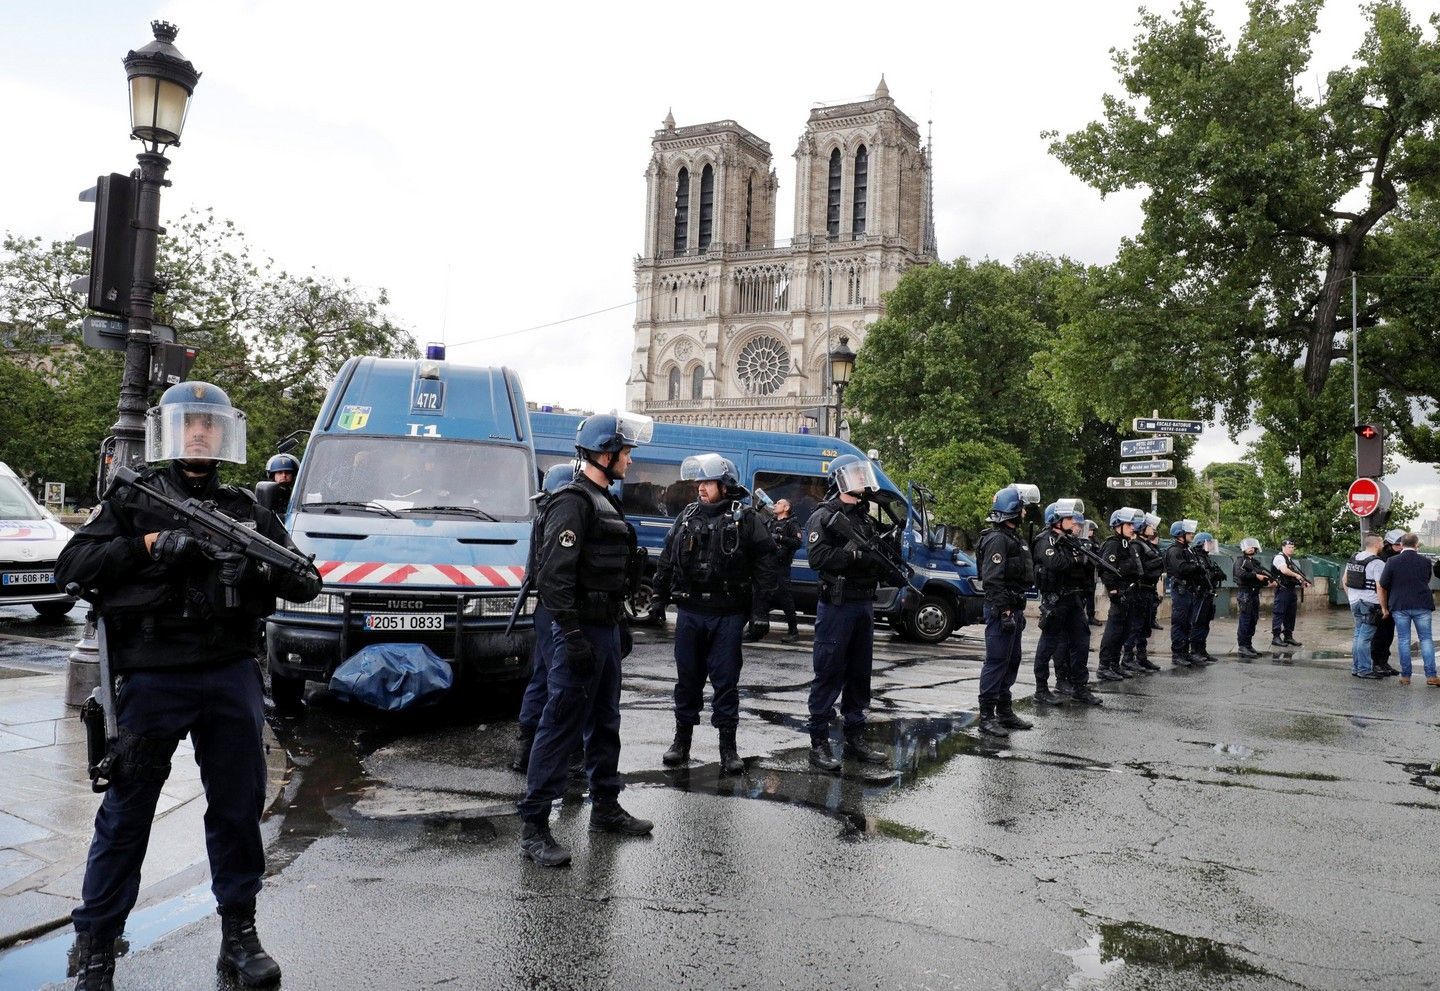 French police stand at the scene of the hammer-attack incident near the Notre Dame Cathedral.